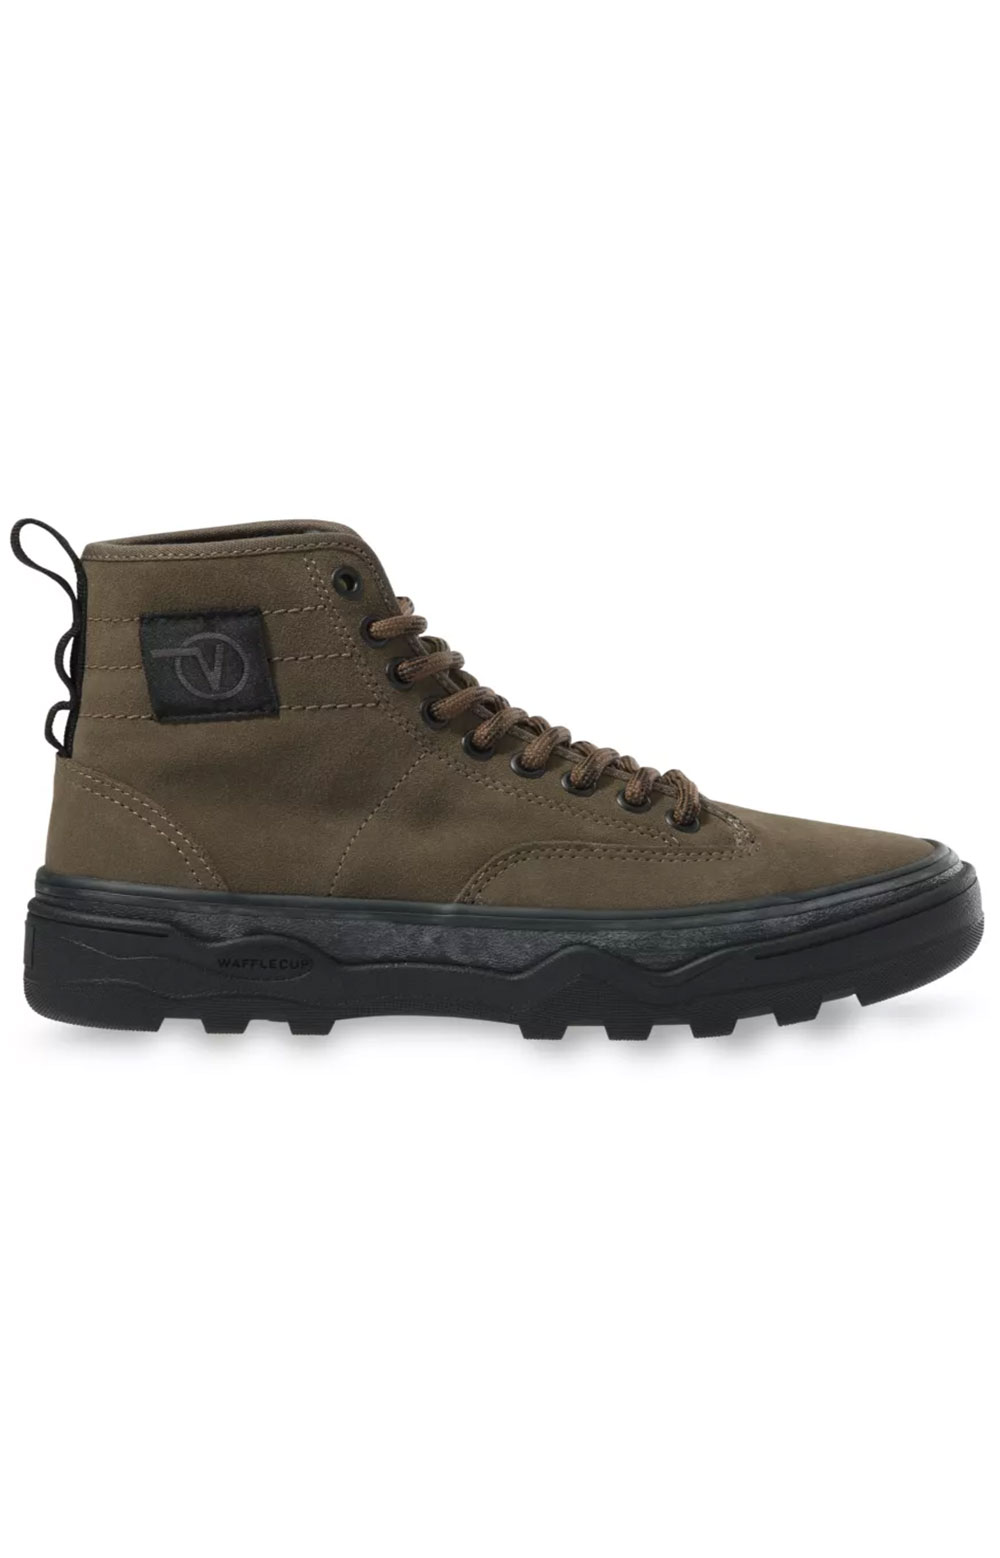 (P3K2VB) Suede Sentry WC Shoes - Canteen/Black